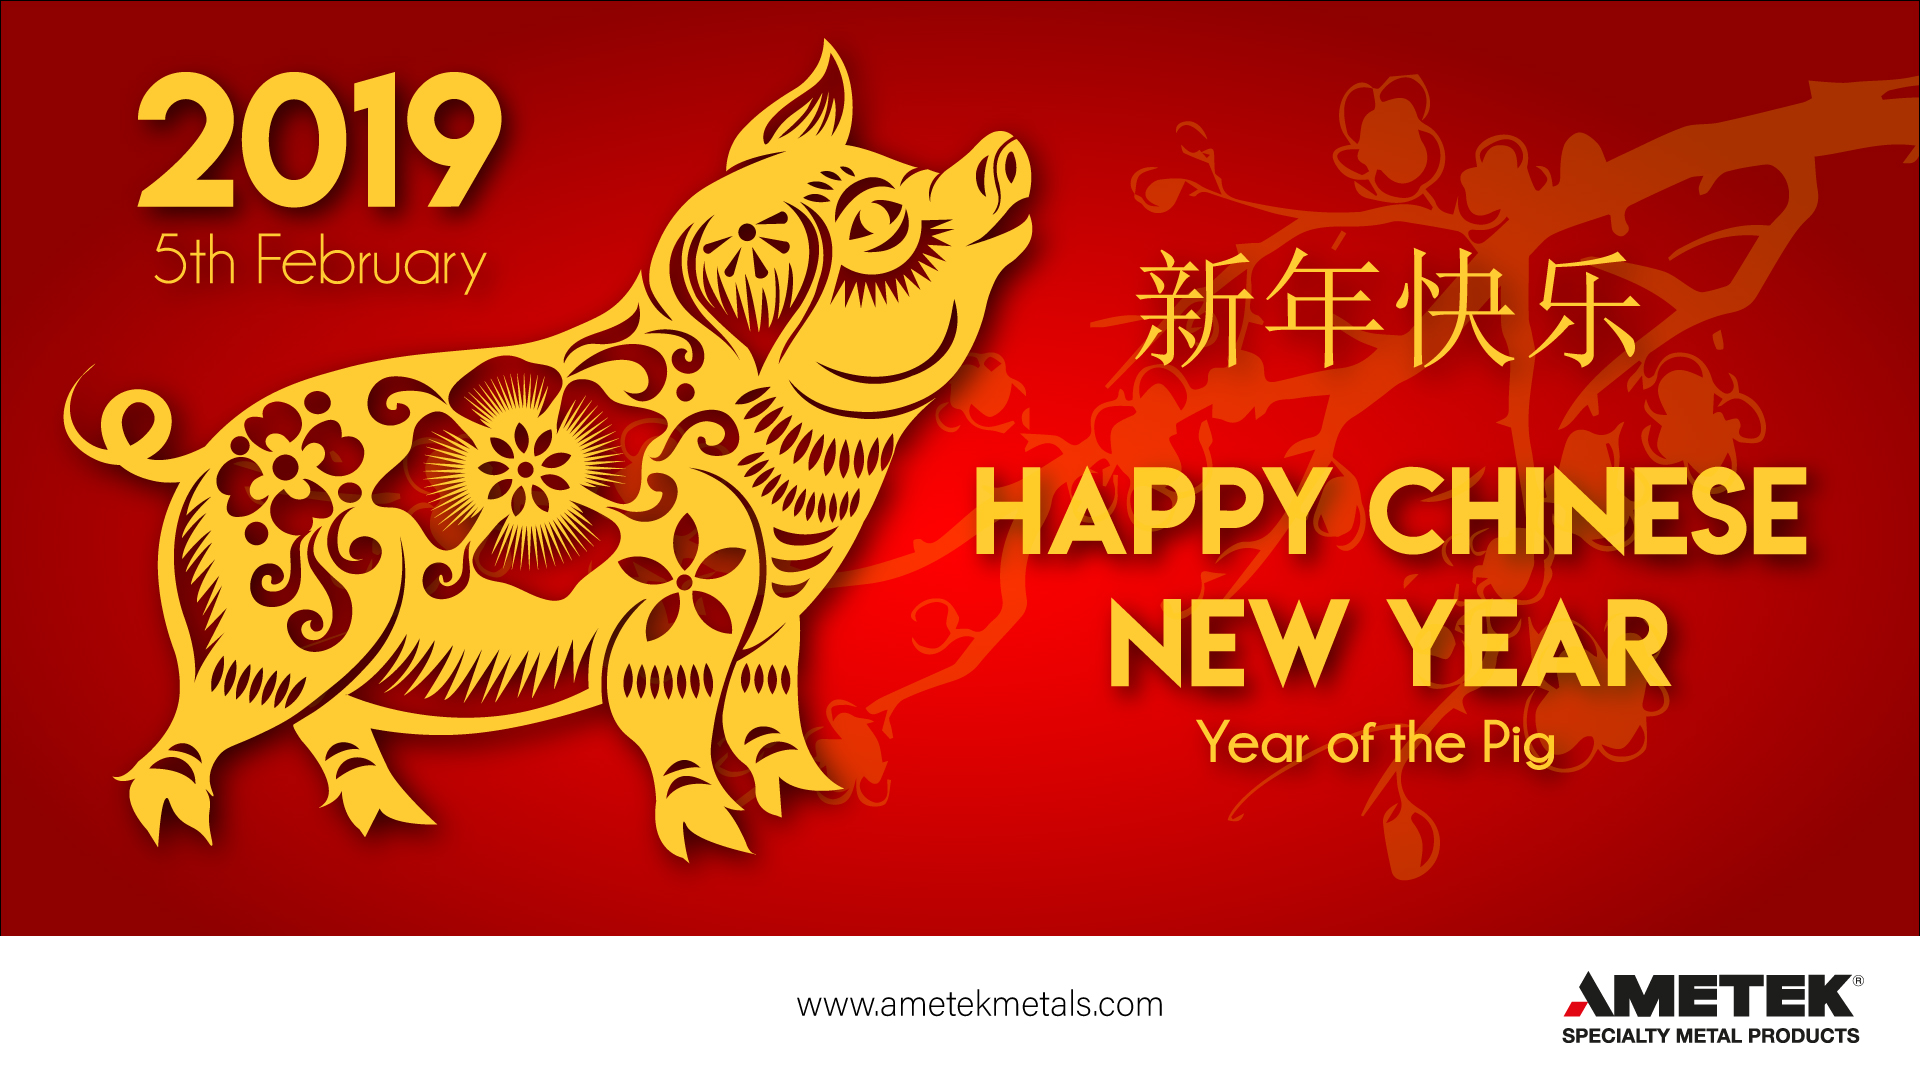 Happy Chinese New Year from AMETEK SMP